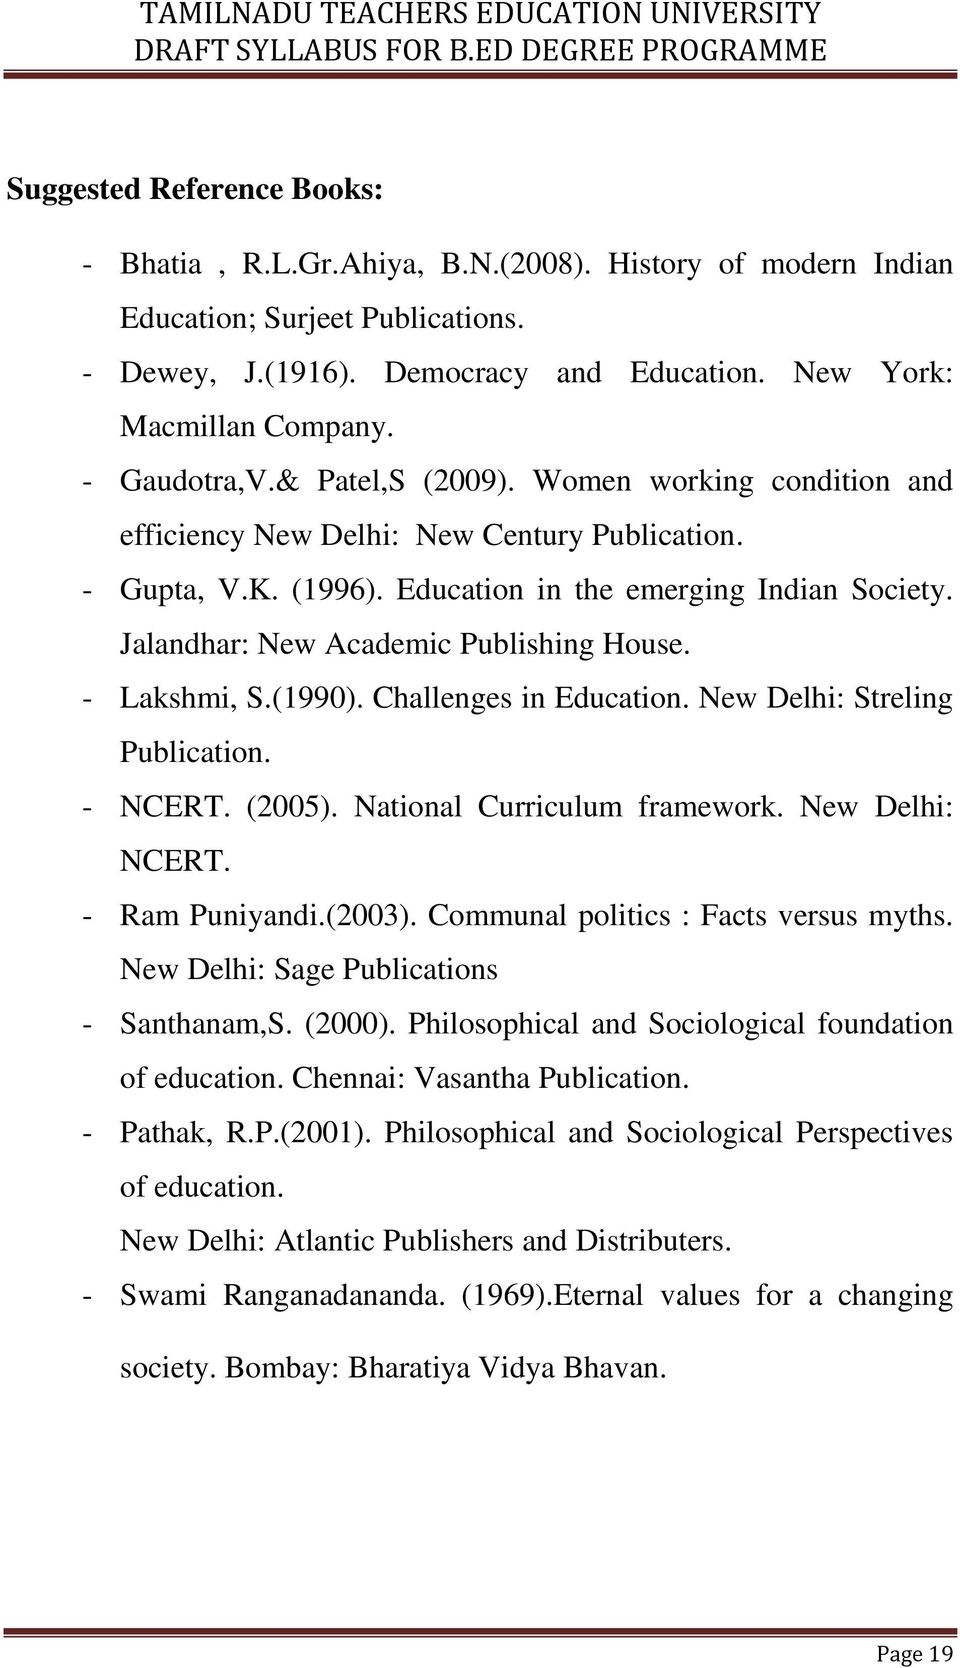 Jalandhar: New Academic Publishing House. - Lakshmi, S.(1990). Challenges in Education. New Delhi: Streling Publication. - NCERT. (2005). National Curriculum framework. New Delhi: NCERT.